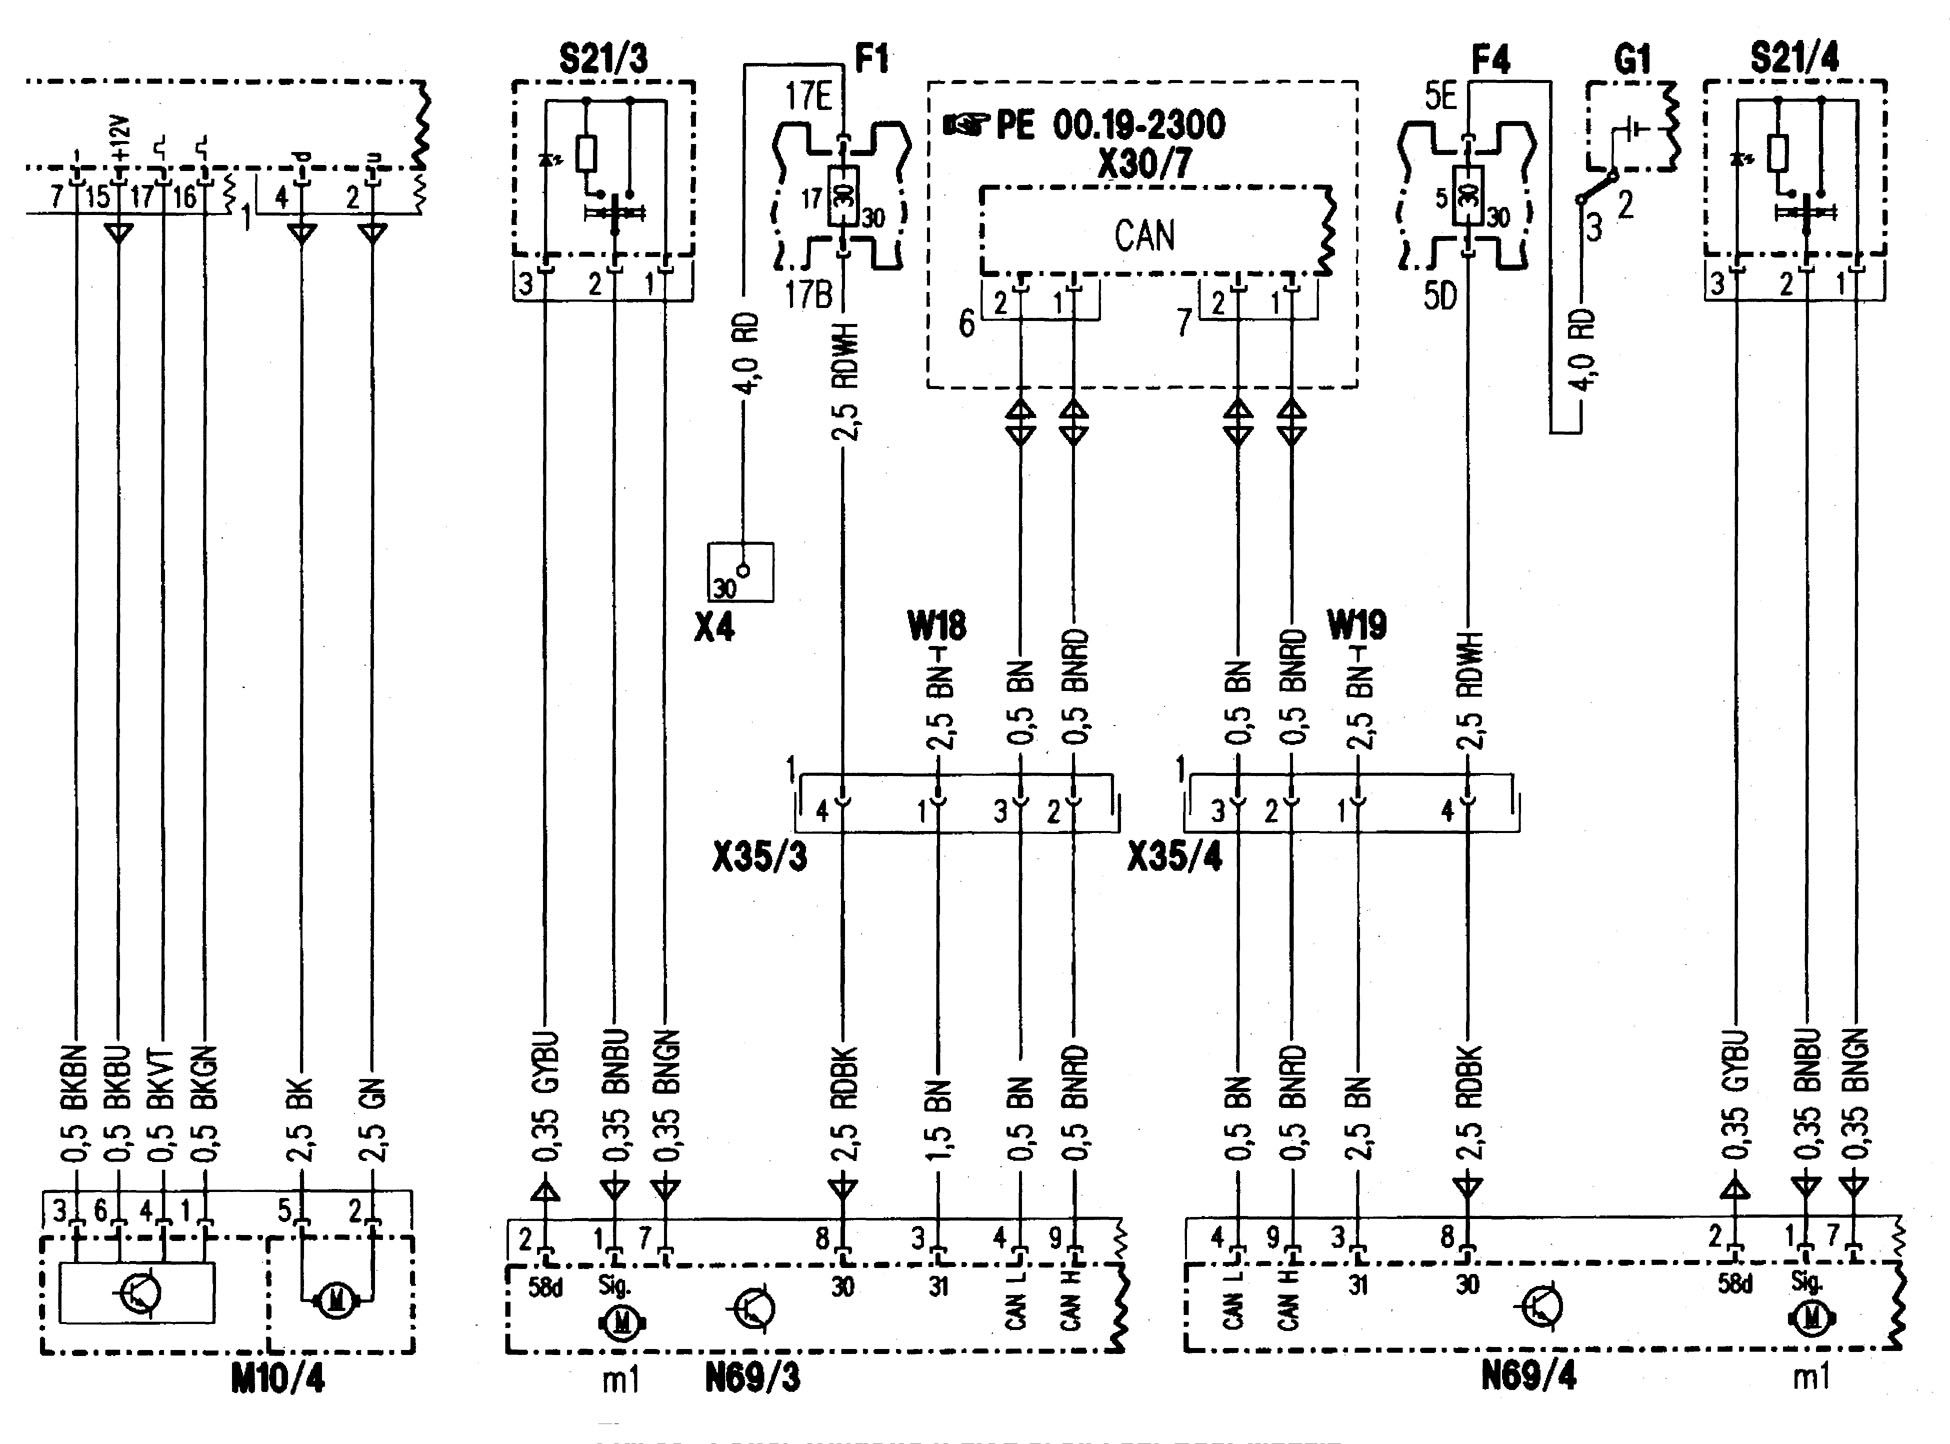 Mercedes Benz C280 1998 Wiring Diagrams Power Windows Engine Diagram Part 2